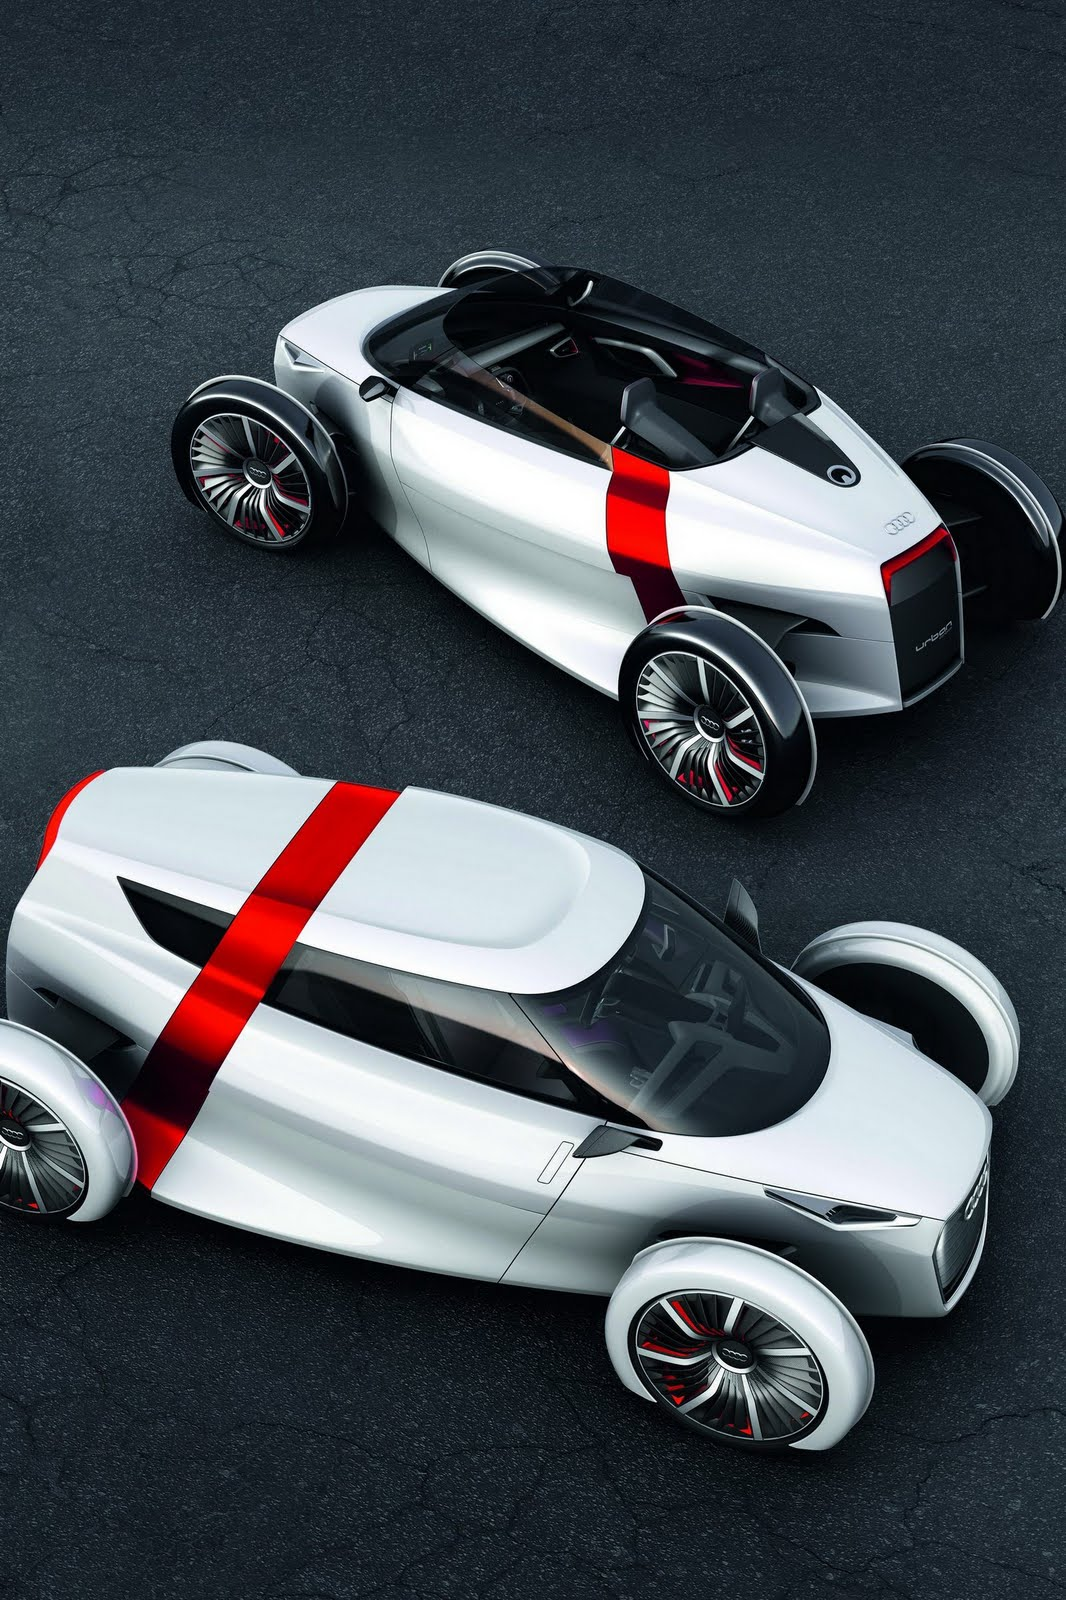 AUDI URBAN SPORTBACK AND SPYDER CONCEPTS AUDI RELEASES NEW IMAGES OF URBAN SPORTBACK AND SPYDER CONCEPTS